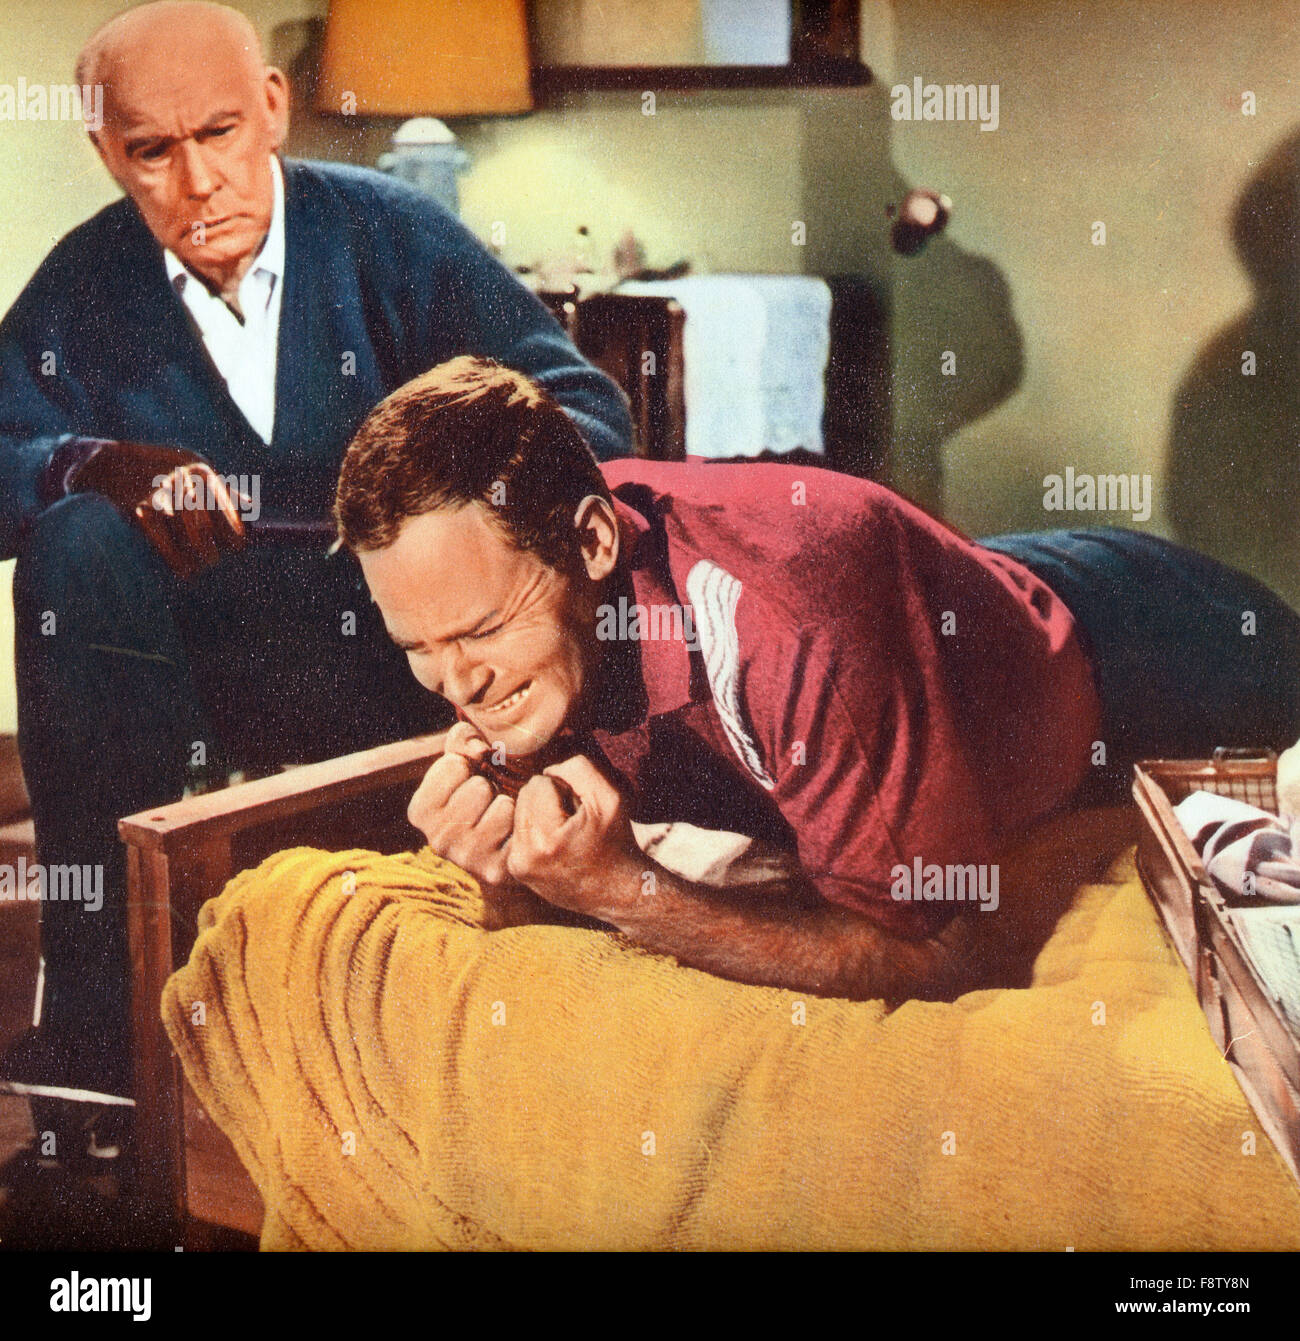 Hand Death Usa 1962 Regie High Resolution Stock Photography and Images -  Alamy